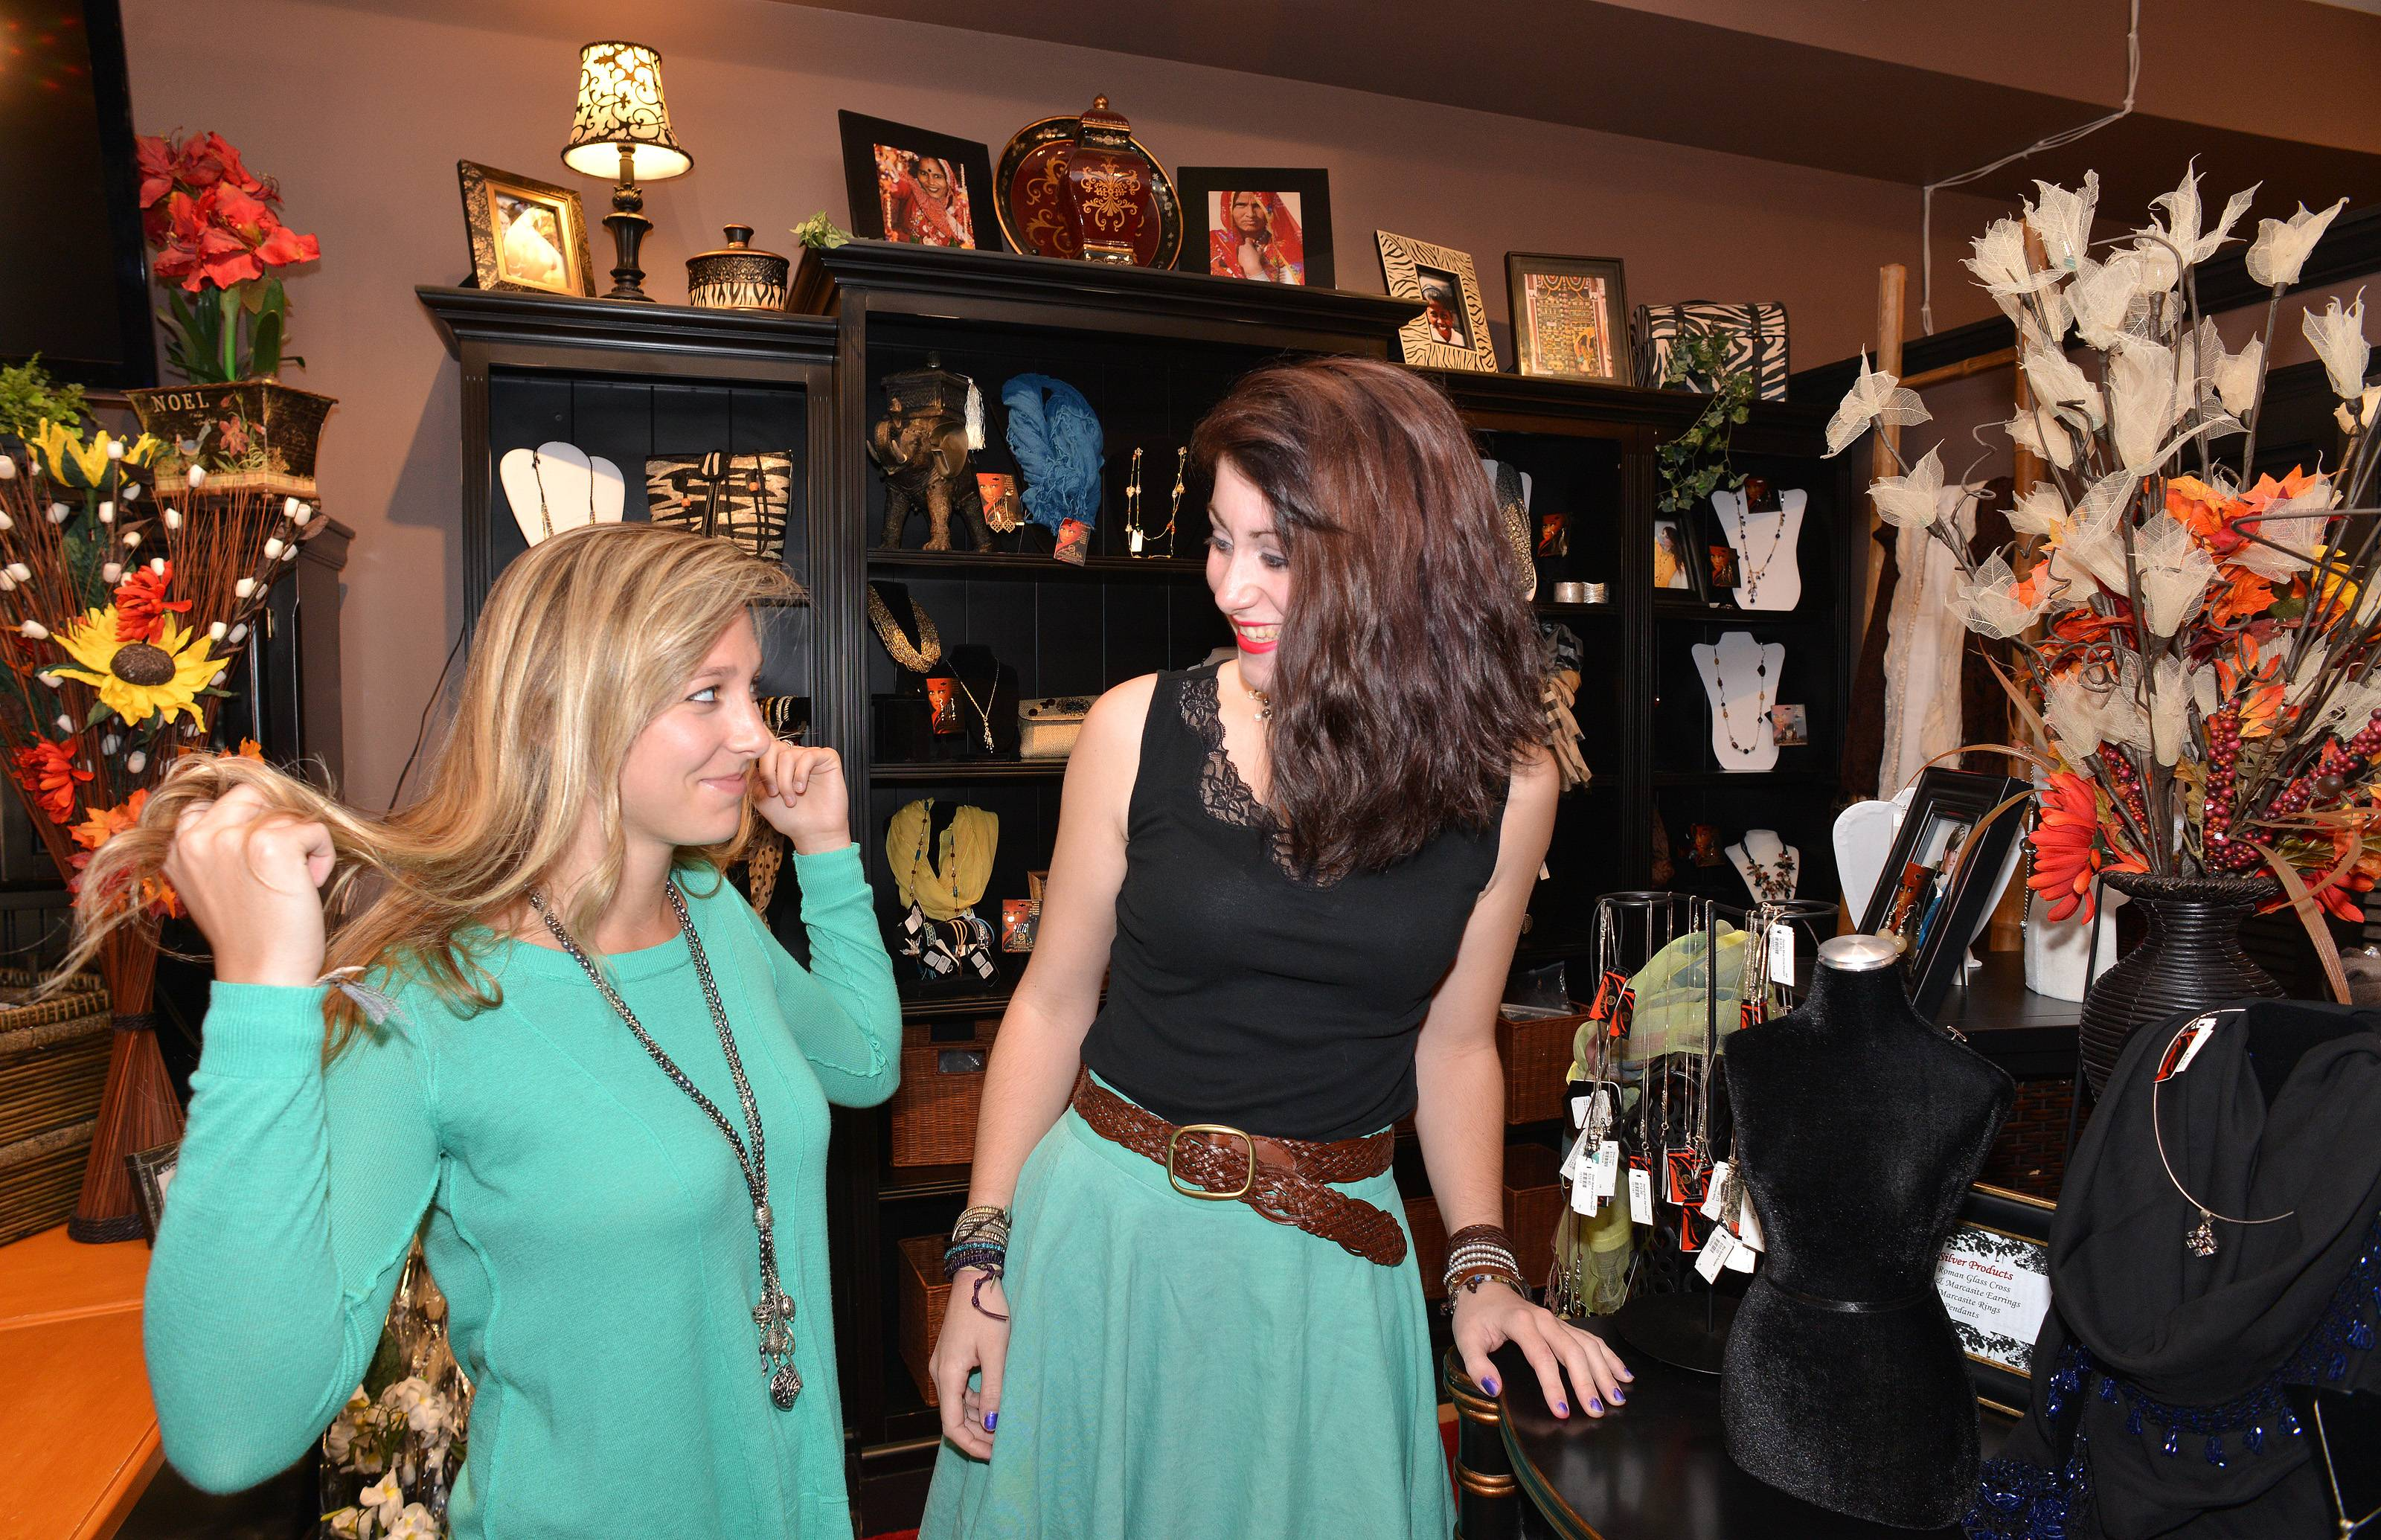 At the WAR Chest Boutique in Naperville, Jessie Dattalo of Wheaton, left, tries on a necklace made by a human trafficking victim in a safe house in the U.S. while Meggie Zayas of Lombard watches.